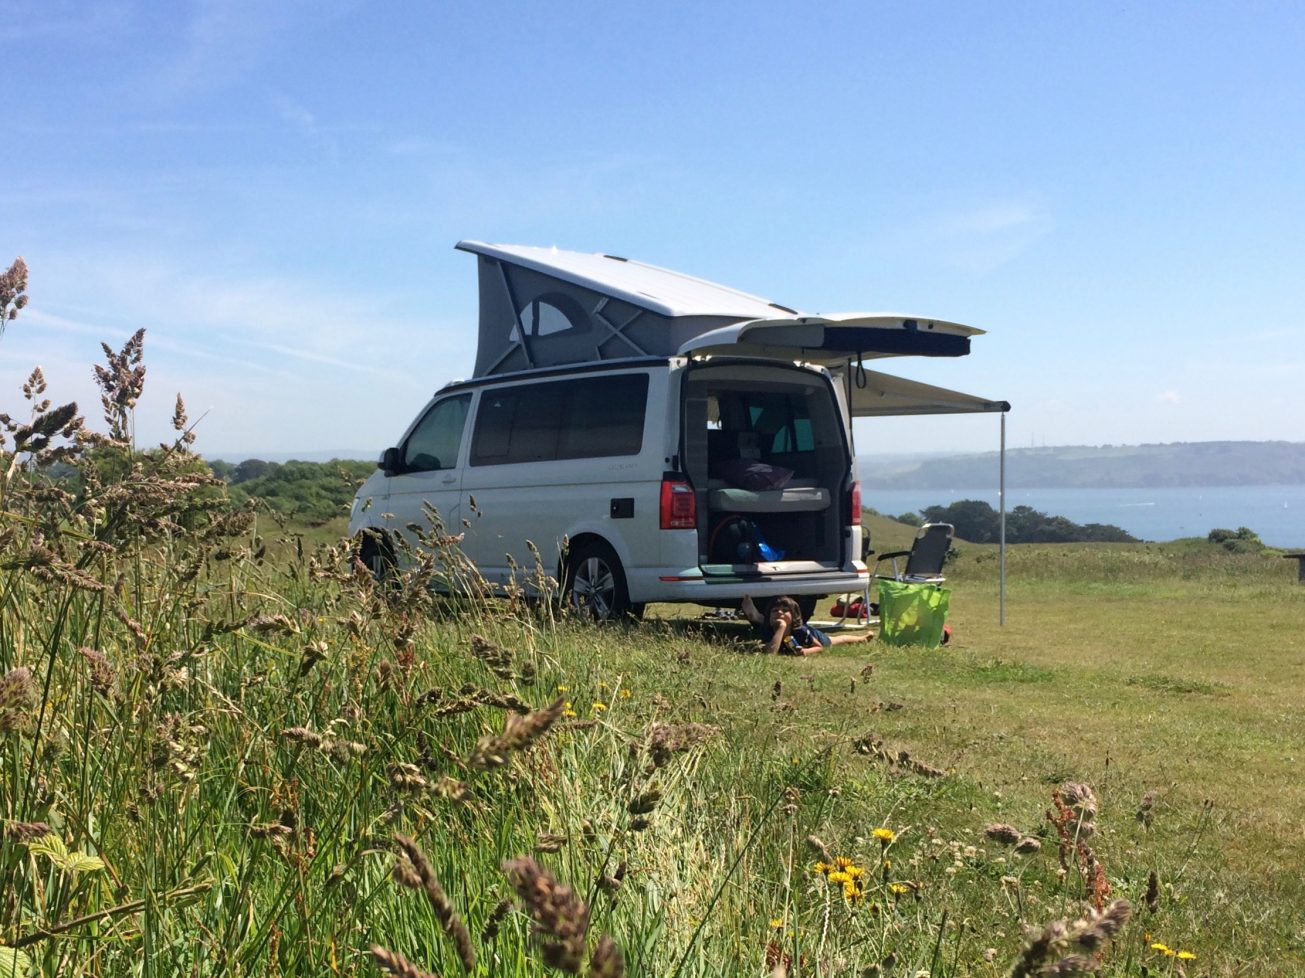 VW California Camper Hire looking out to sea in Cornwall